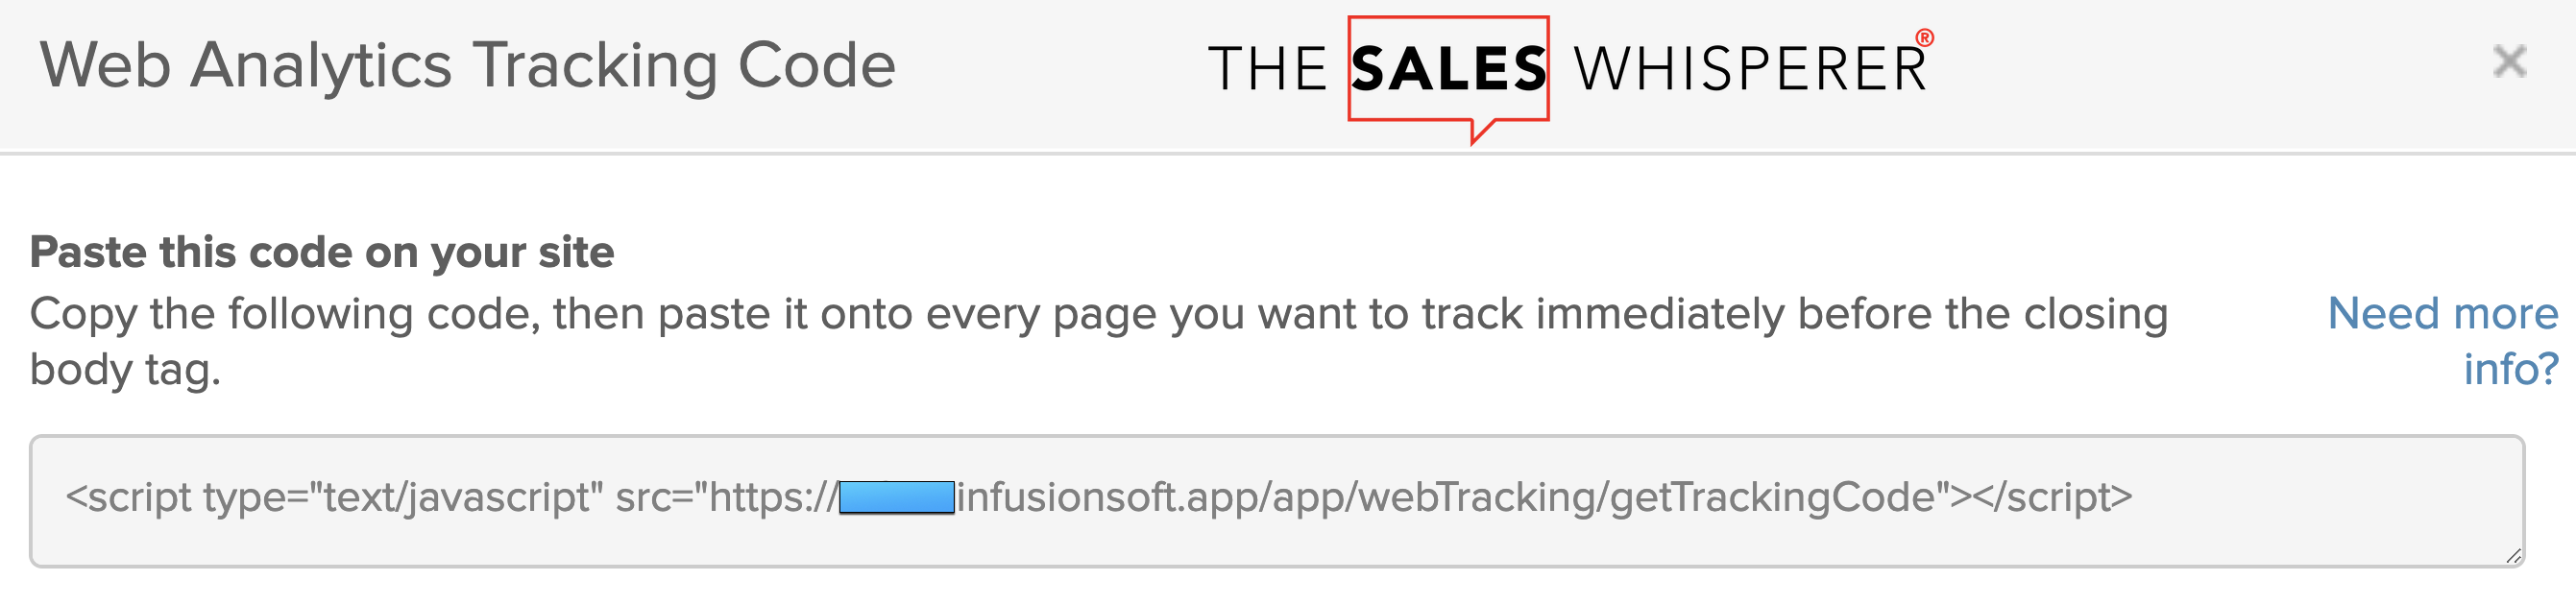 Install Infusionsoft Wordpress tracking code for lead generation by Wes Schaeffer, The Sales Whisperer®